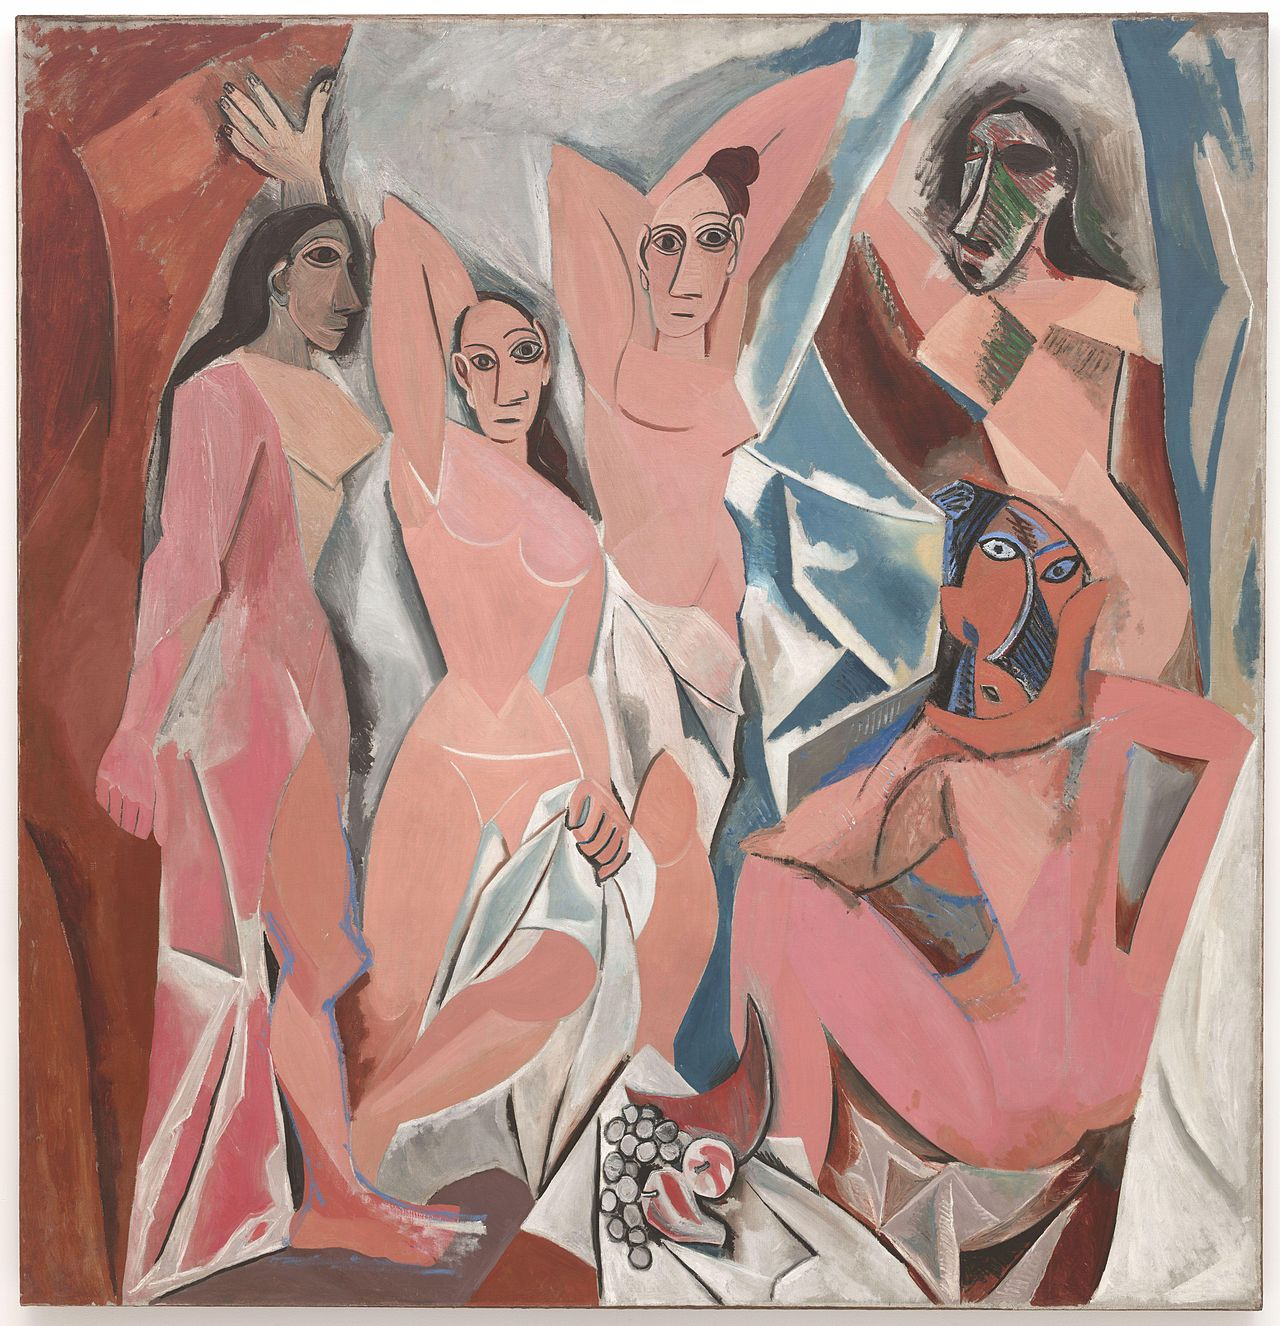 https://media.thisisgallery.com/wp-content/uploads/2018/12/picasso_02.jpg